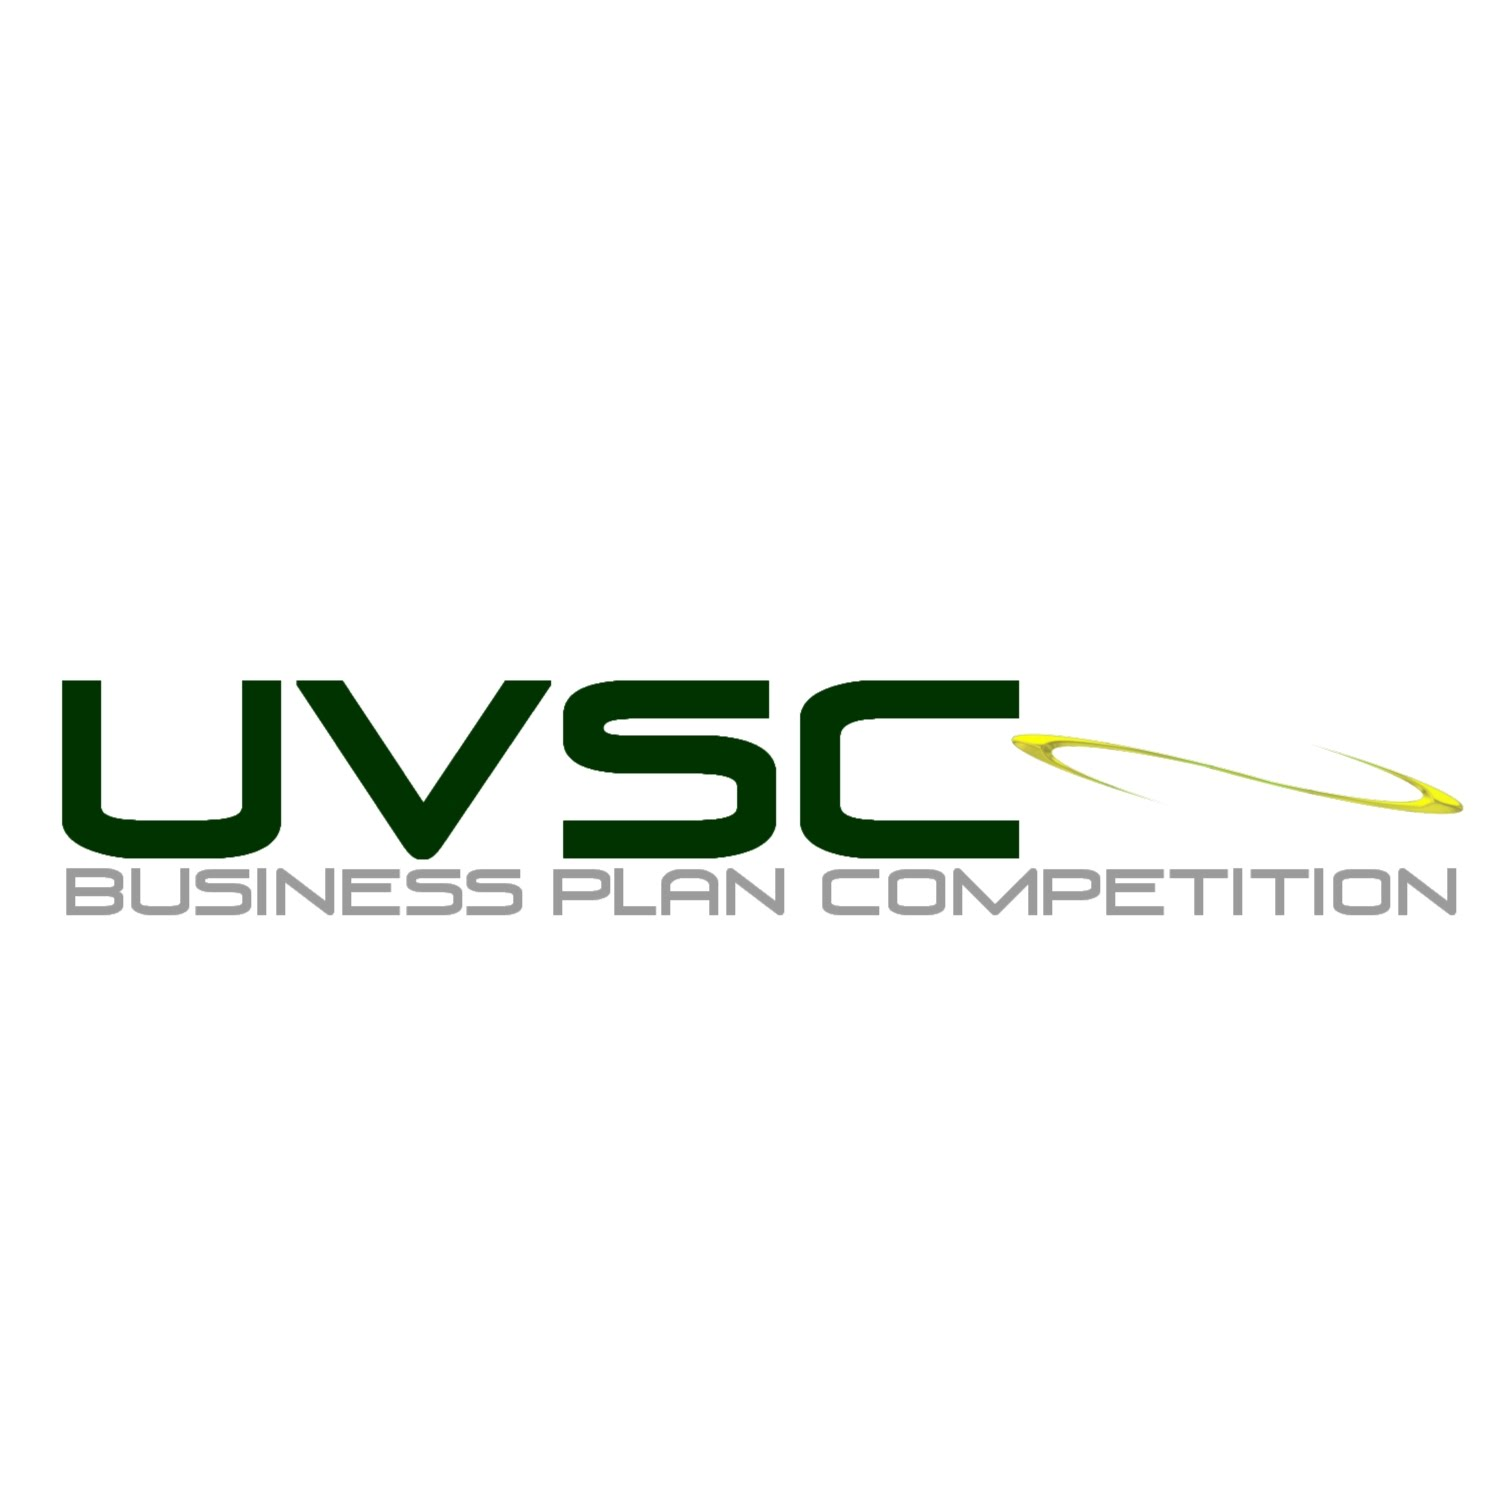 NAWBO-CJ Business Plan Competition Finalists Announced, Winner to be Selected at May 20 Event